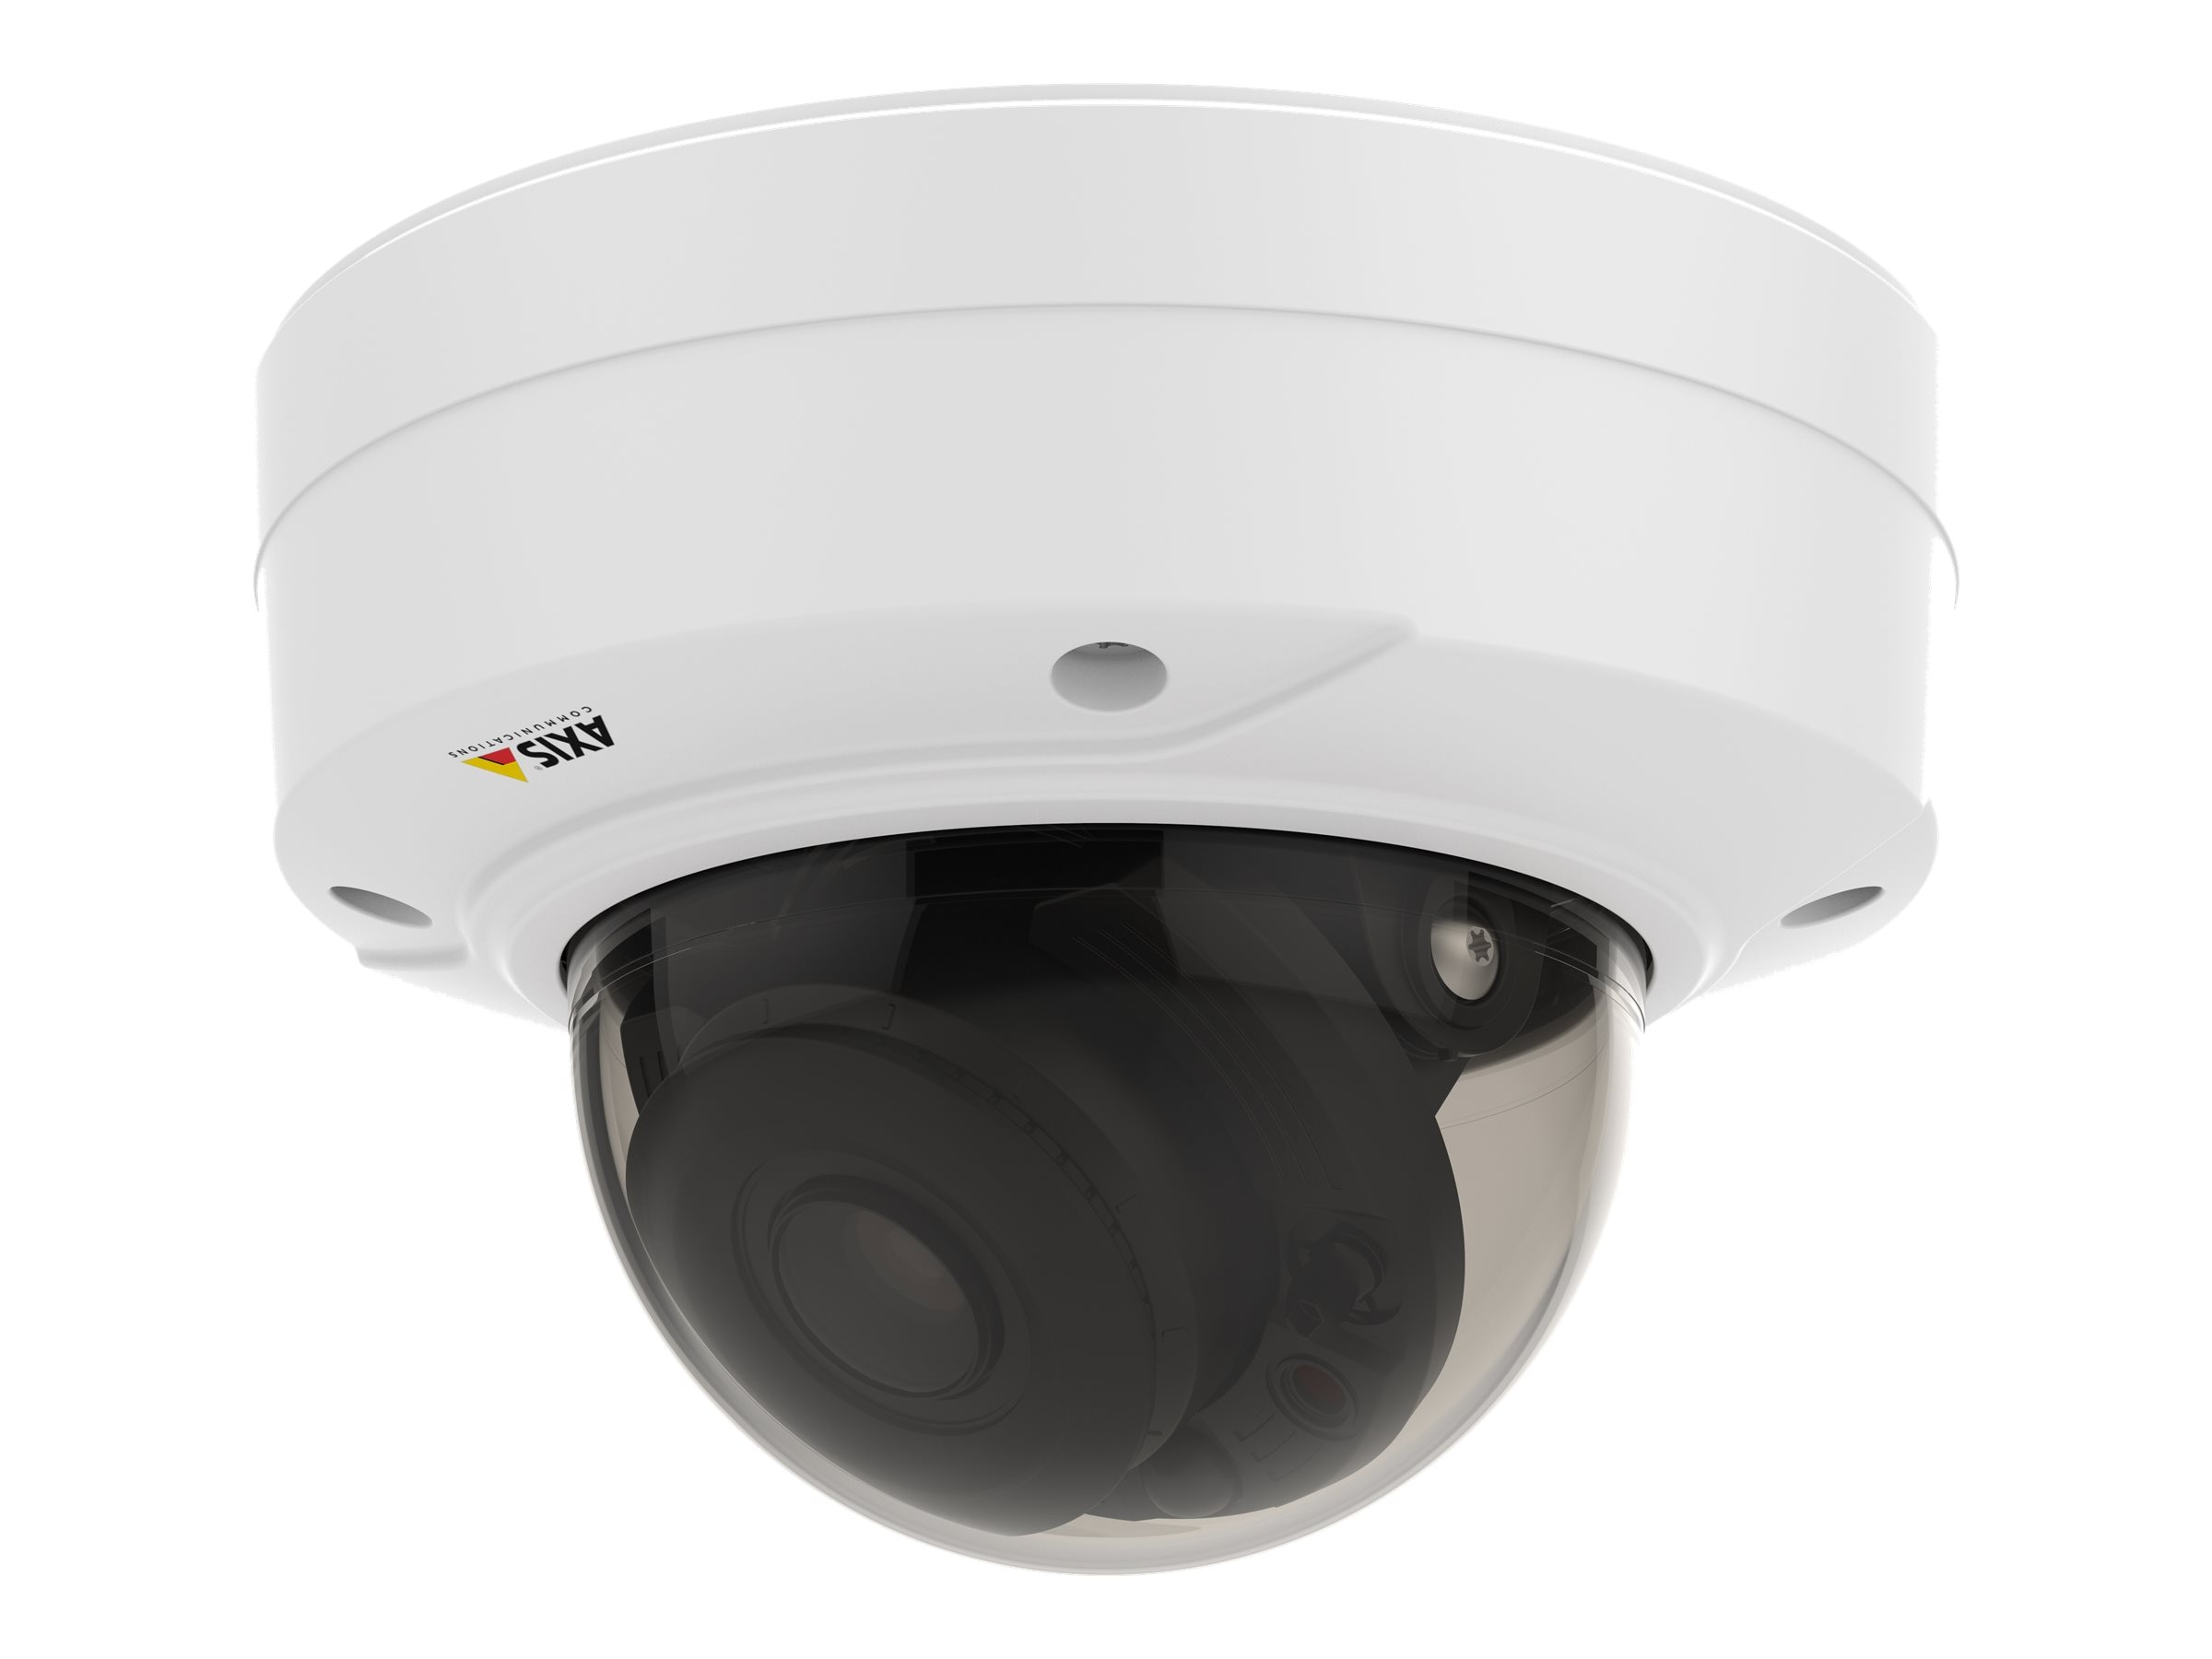 Axis P3224-LV 720p Day Night Fixed Dome Camera, 0759-001, 23410942, Cameras - Security